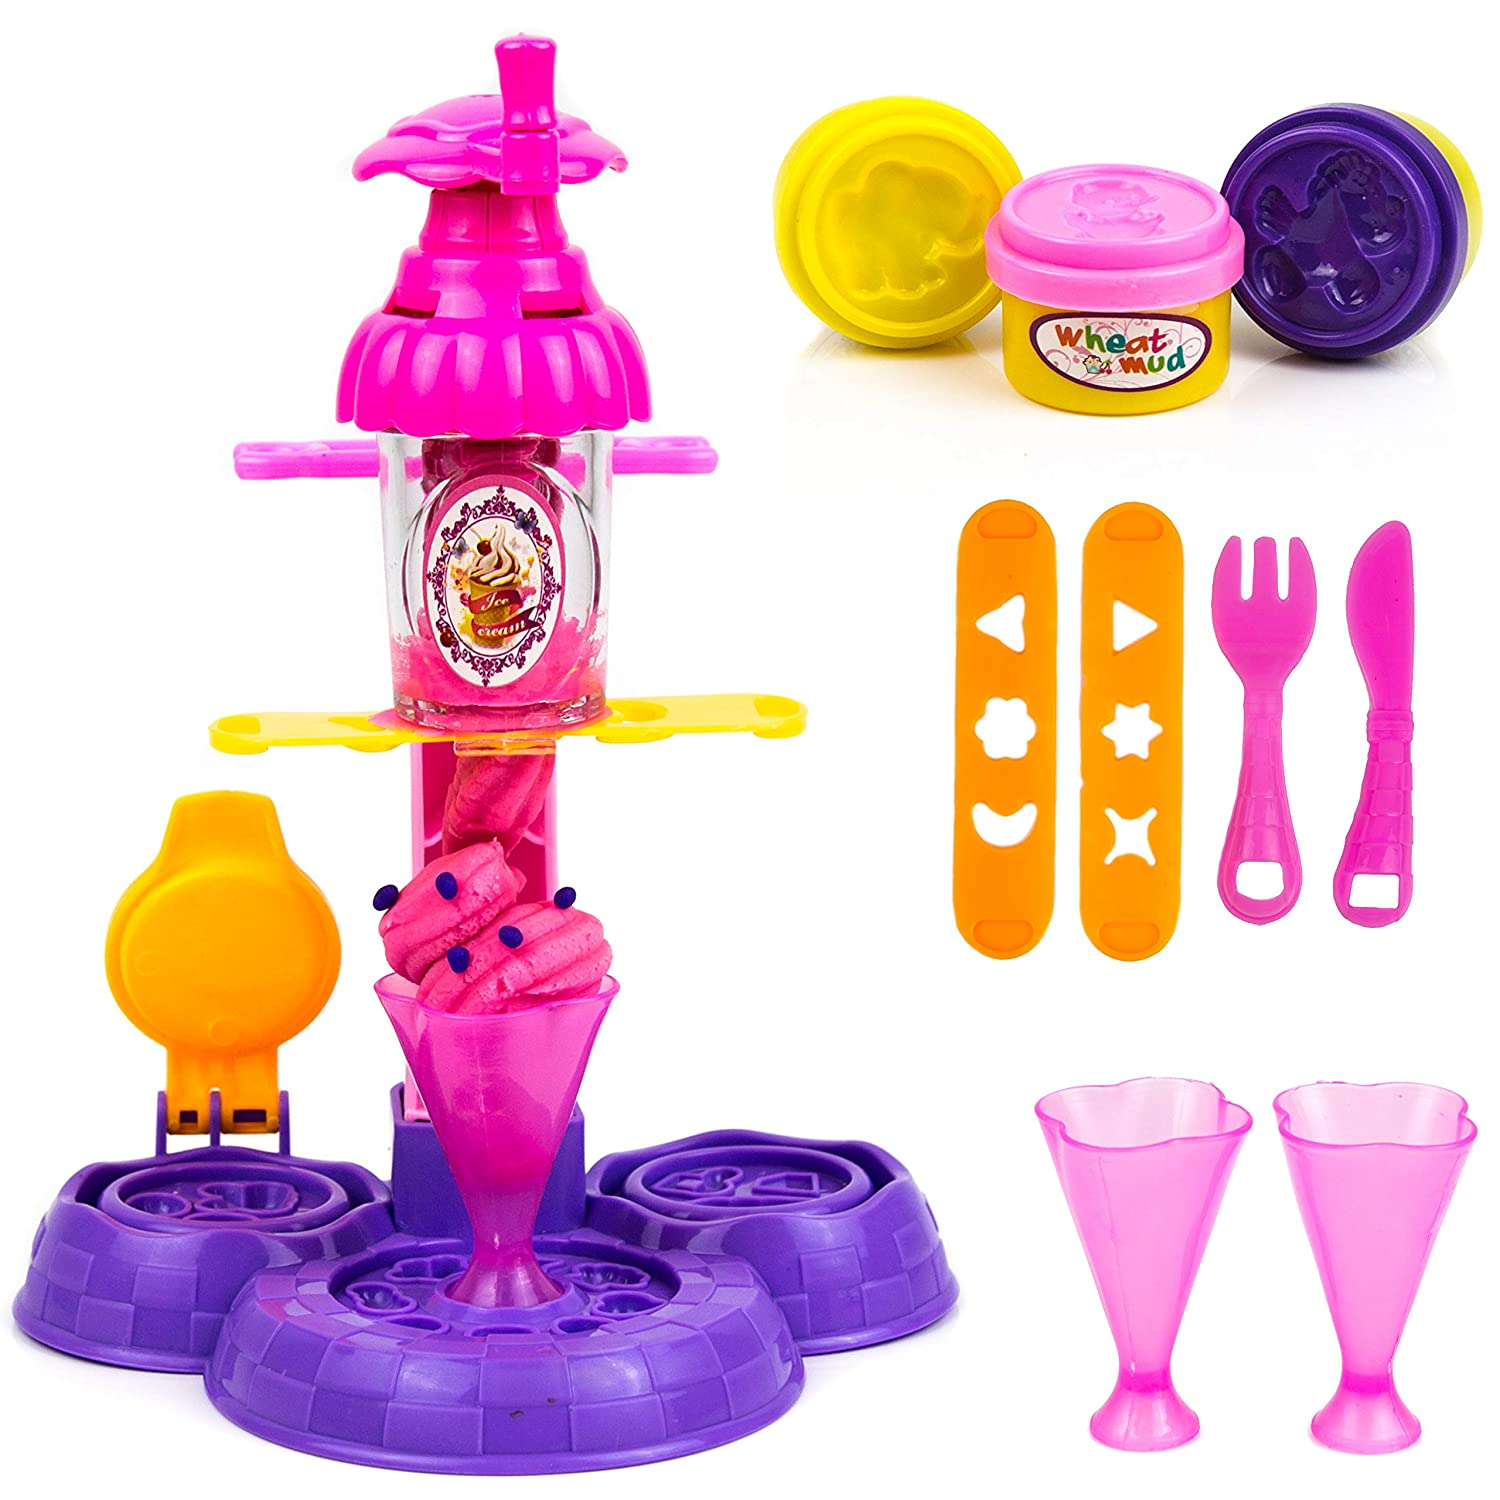 Amazon Com Toysery Ice Cream Maker For Kids Durable Ice Cream Toys For Kids Smart Kitchen Set For Kids Great Ice Cream Mix Toddler Toys Ice Cream Toys For Girls Non Toxic Food